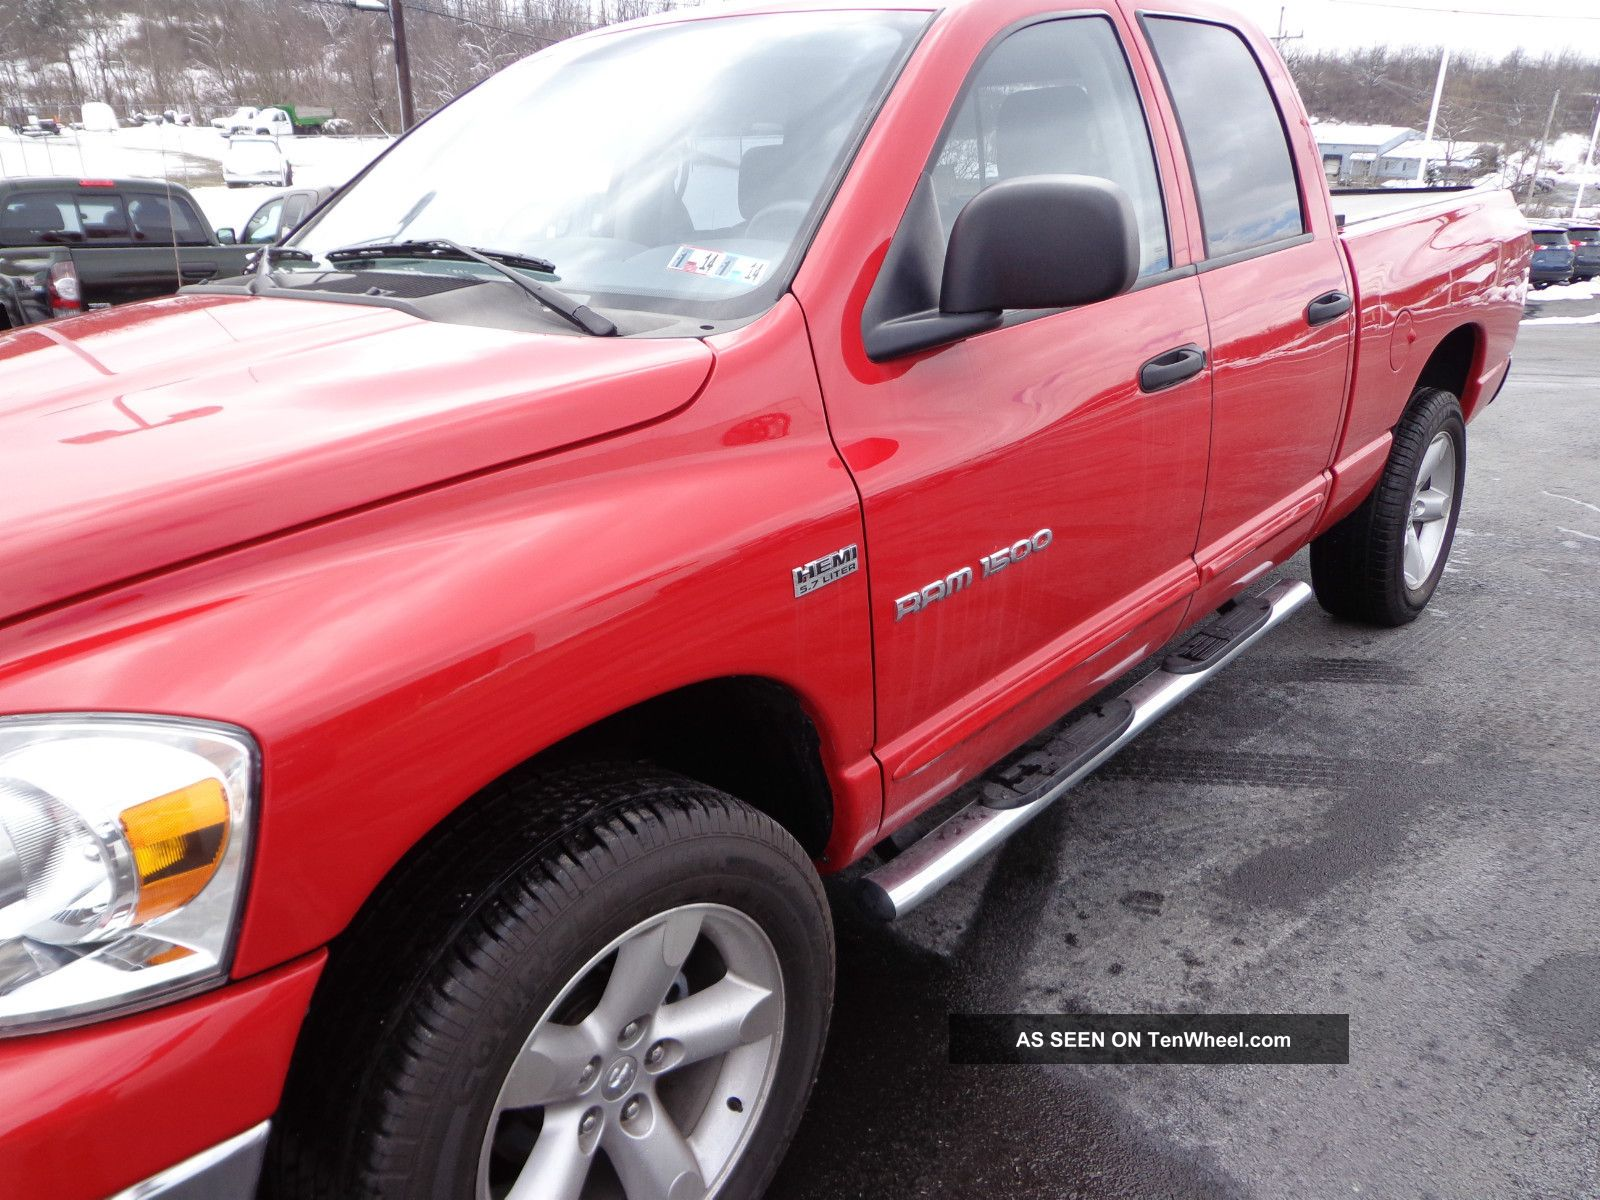 2007 dodge ram 1500 slt hemi 5 7l v8 4x4 tonneau cover. Black Bedroom Furniture Sets. Home Design Ideas